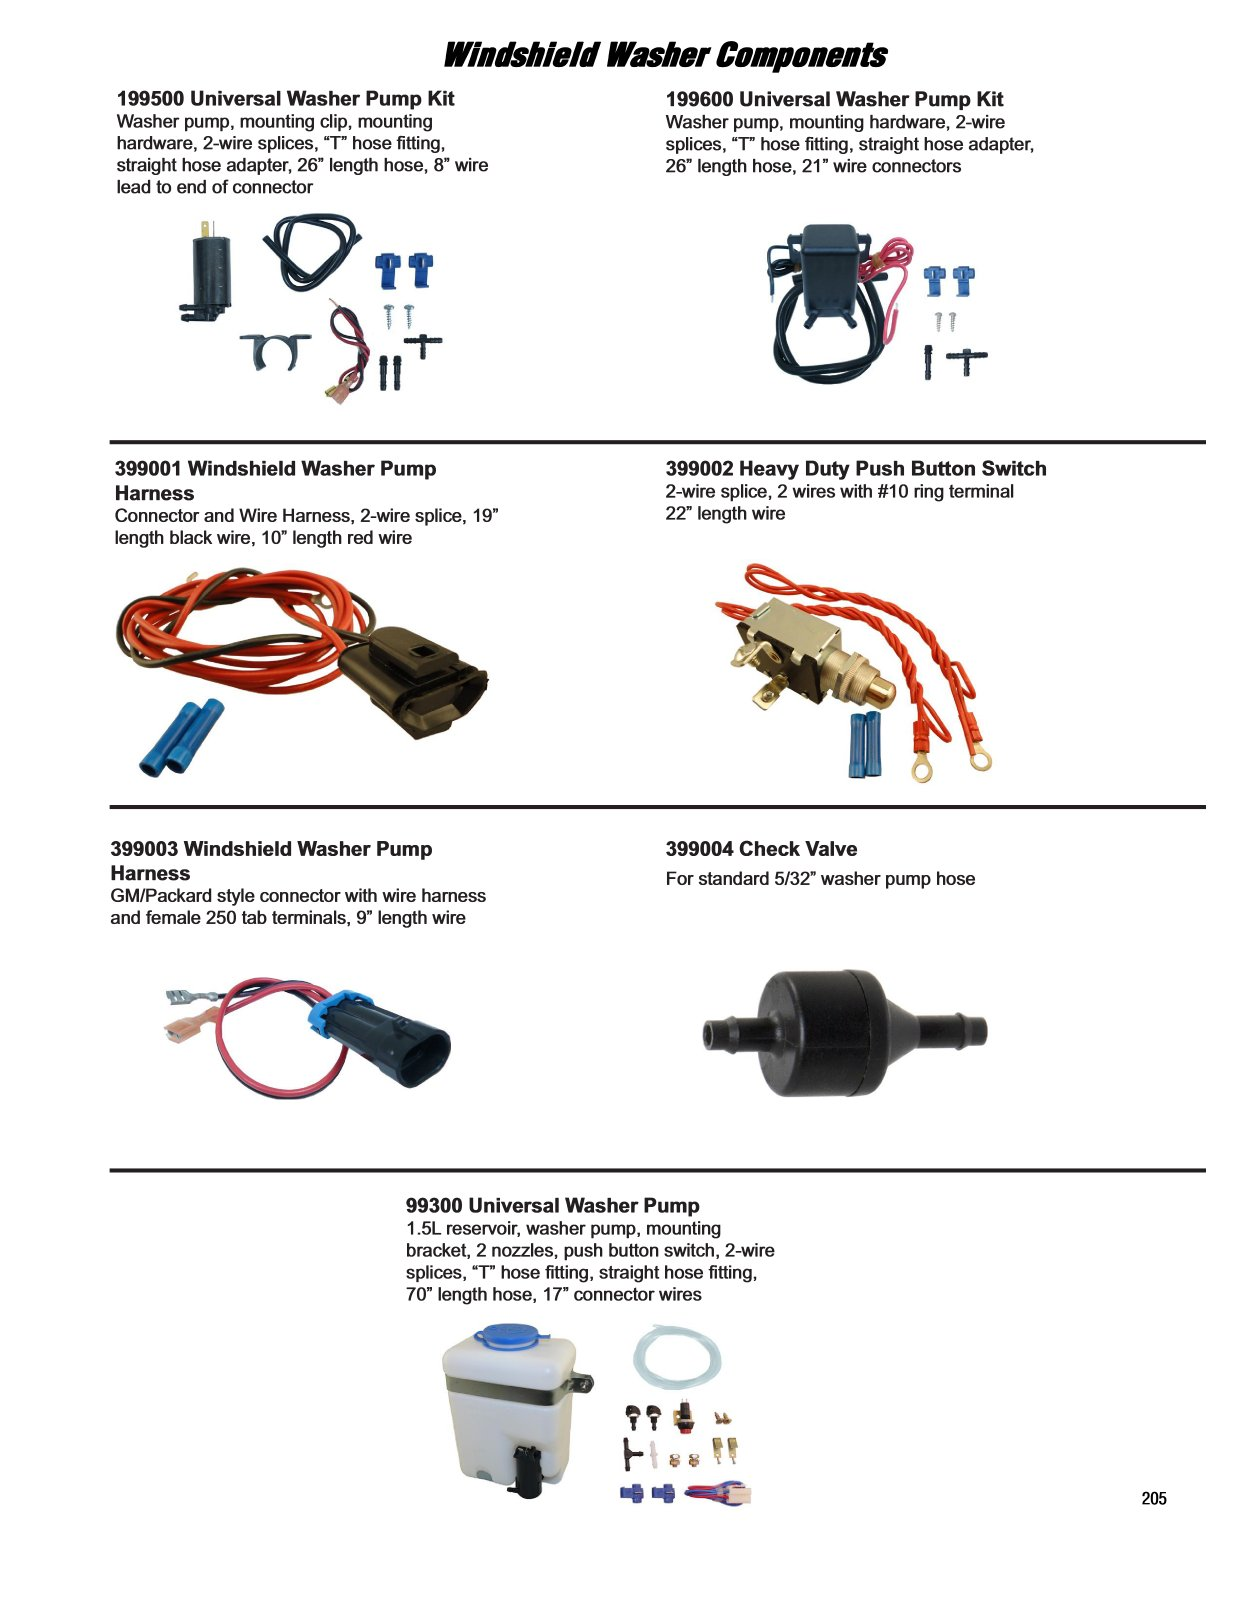 2017 Illustrated Guide - Page 205 Universal Washer Pump and Harness